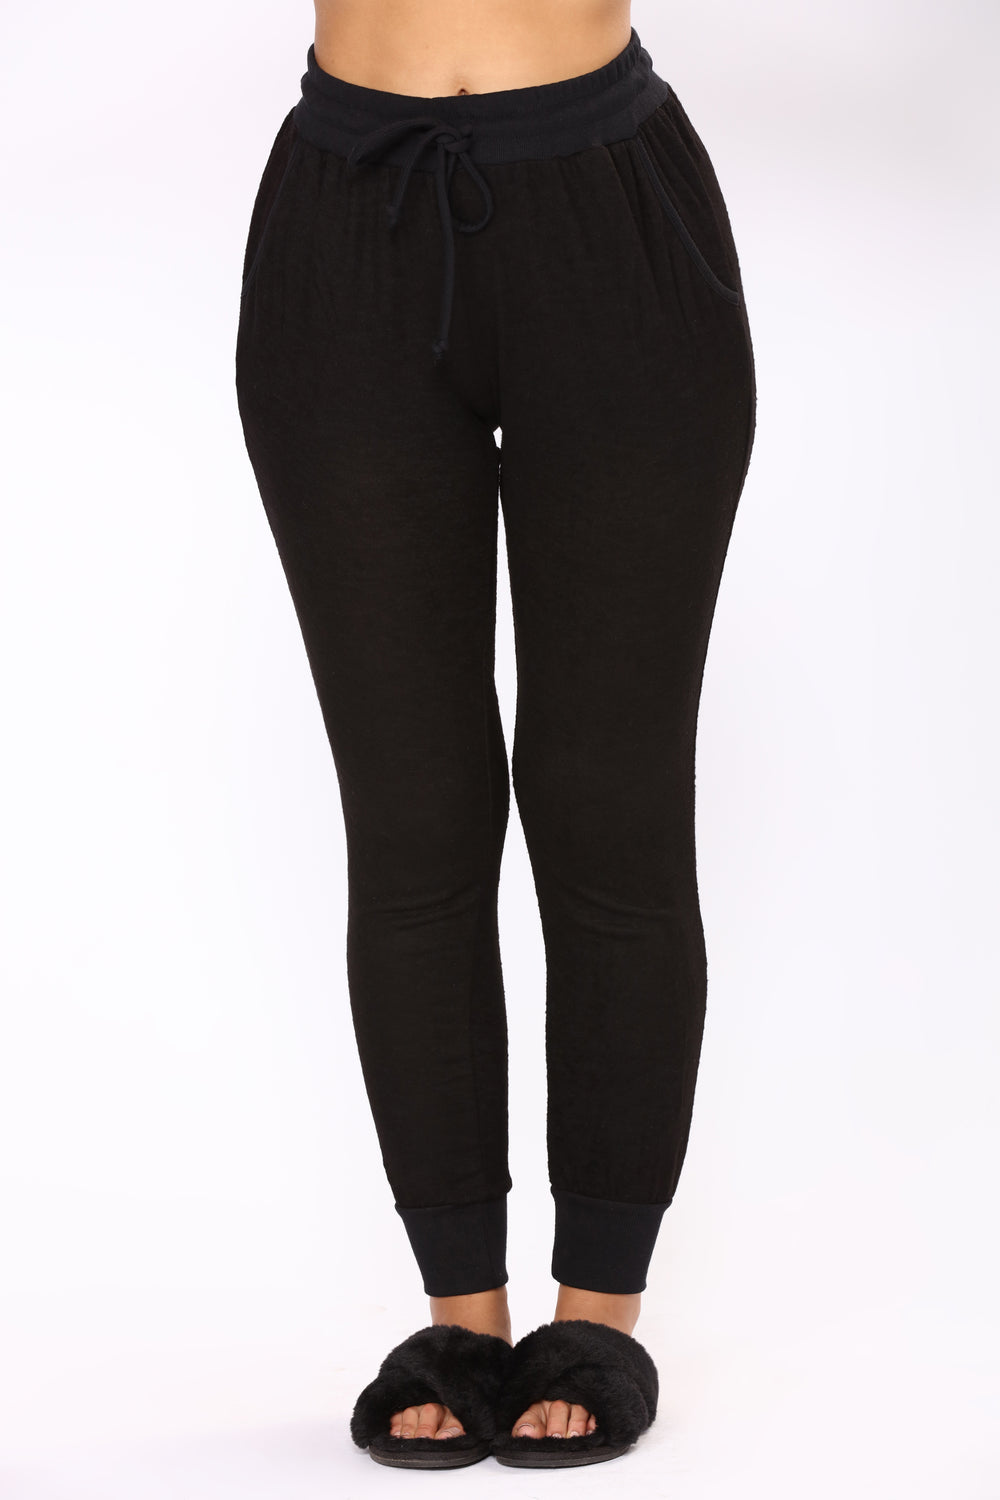 Chilling Lounge Jogger - Black